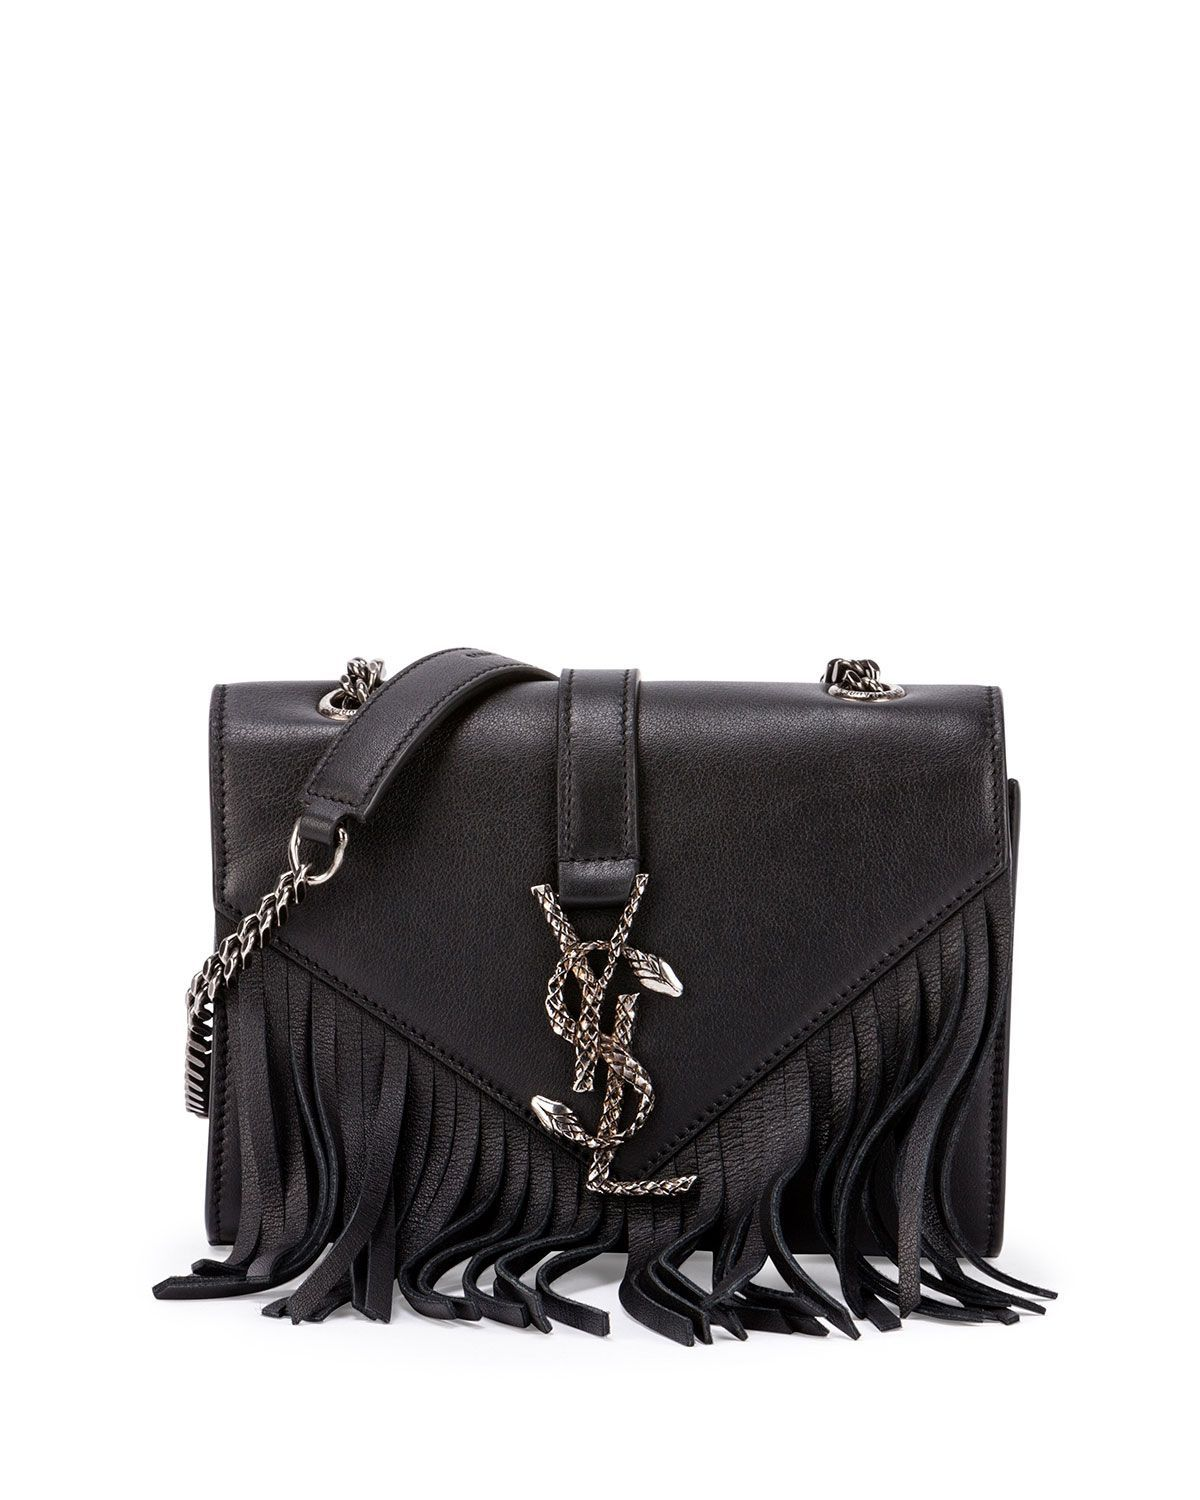 VIDA Leather Statement Clutch - In focus by kostistlac by VIDA